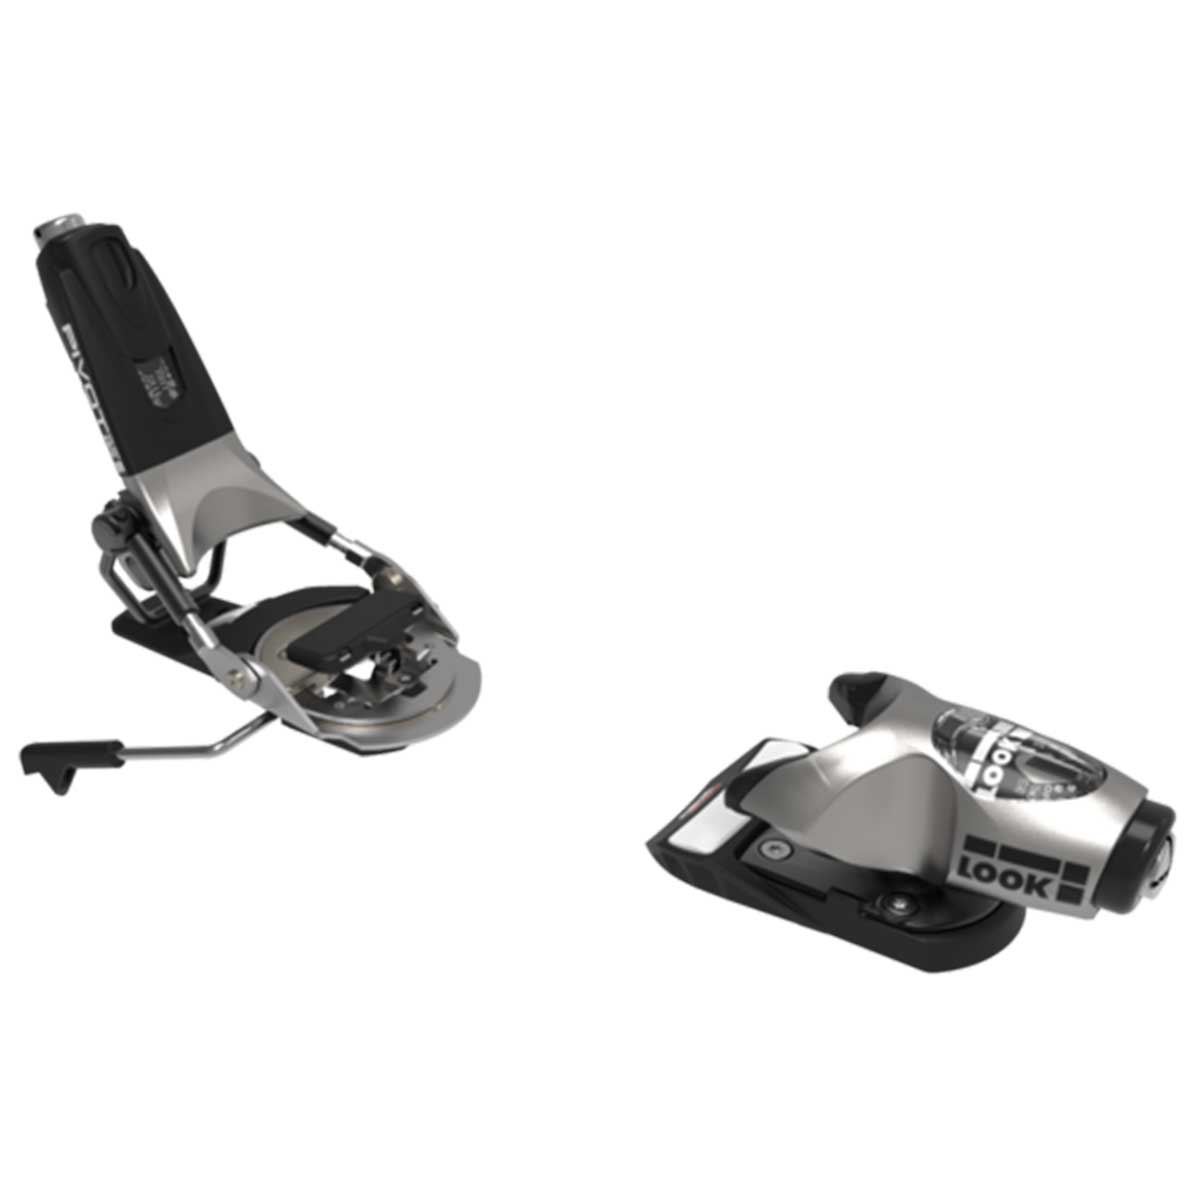 Look Pivot 15 GripWalk ski binding in Raw